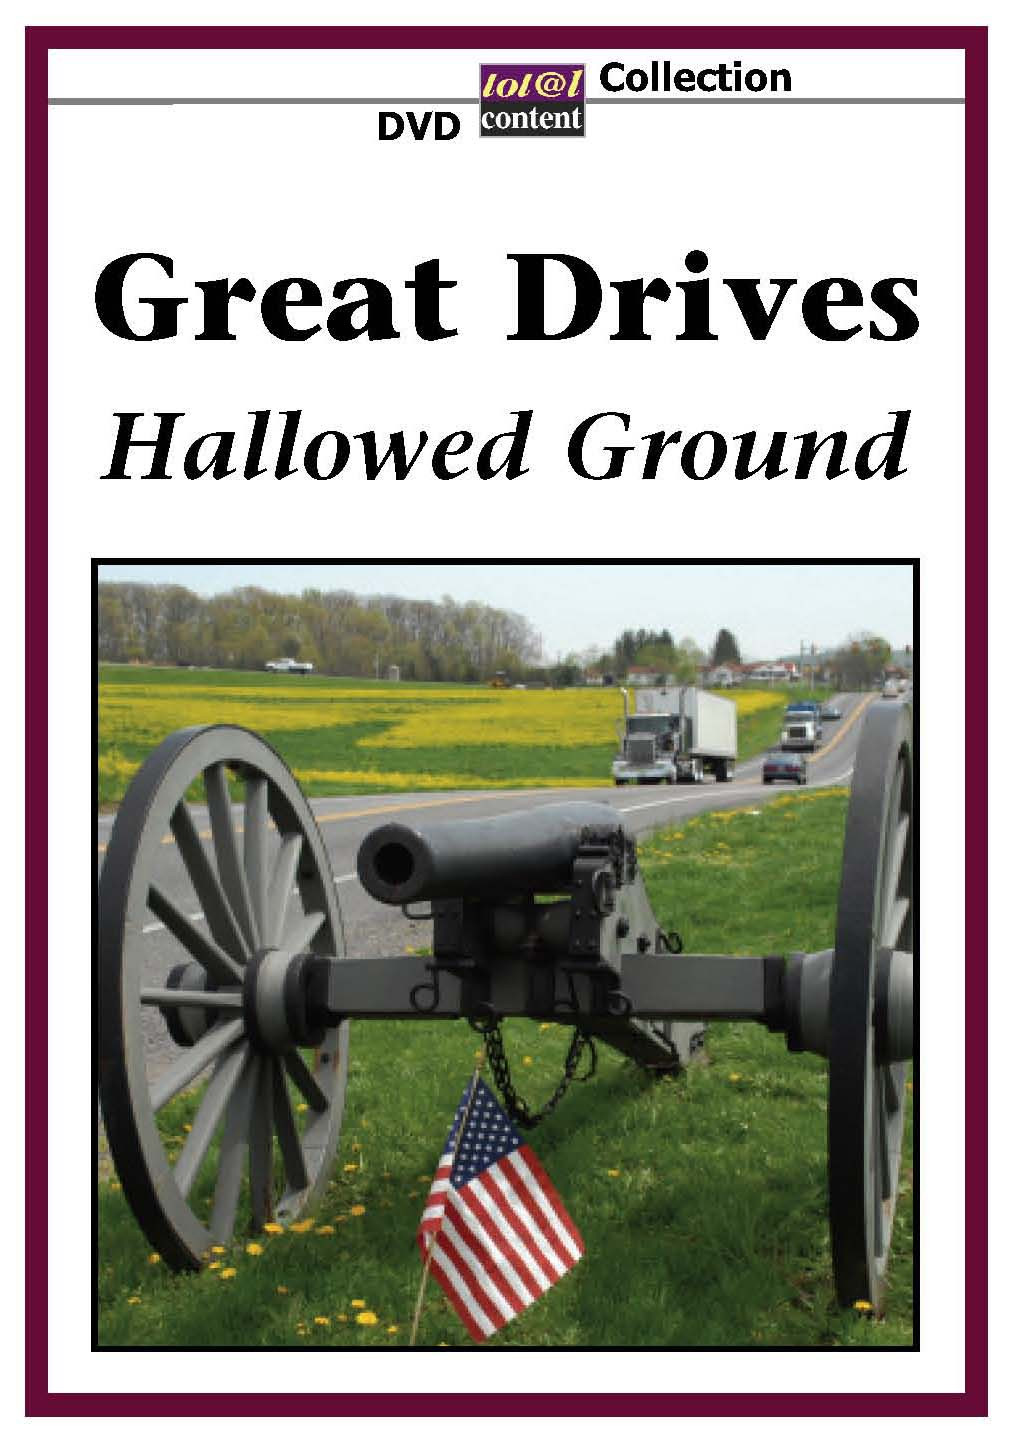 Great Drives: Hallowed Ground